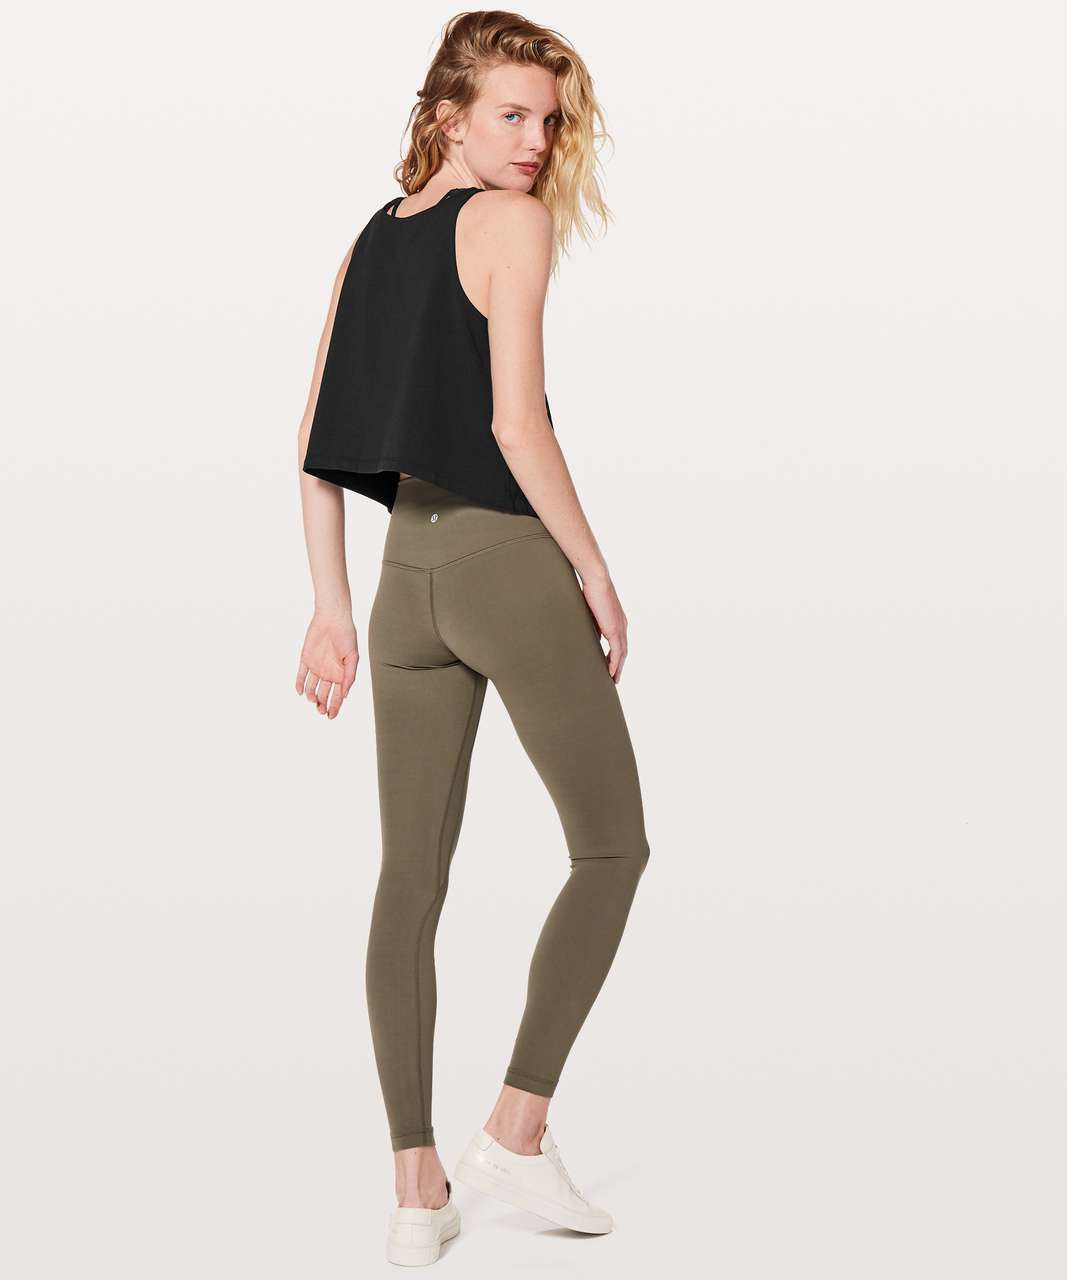 Lululemon Blissed Out Tank - Black